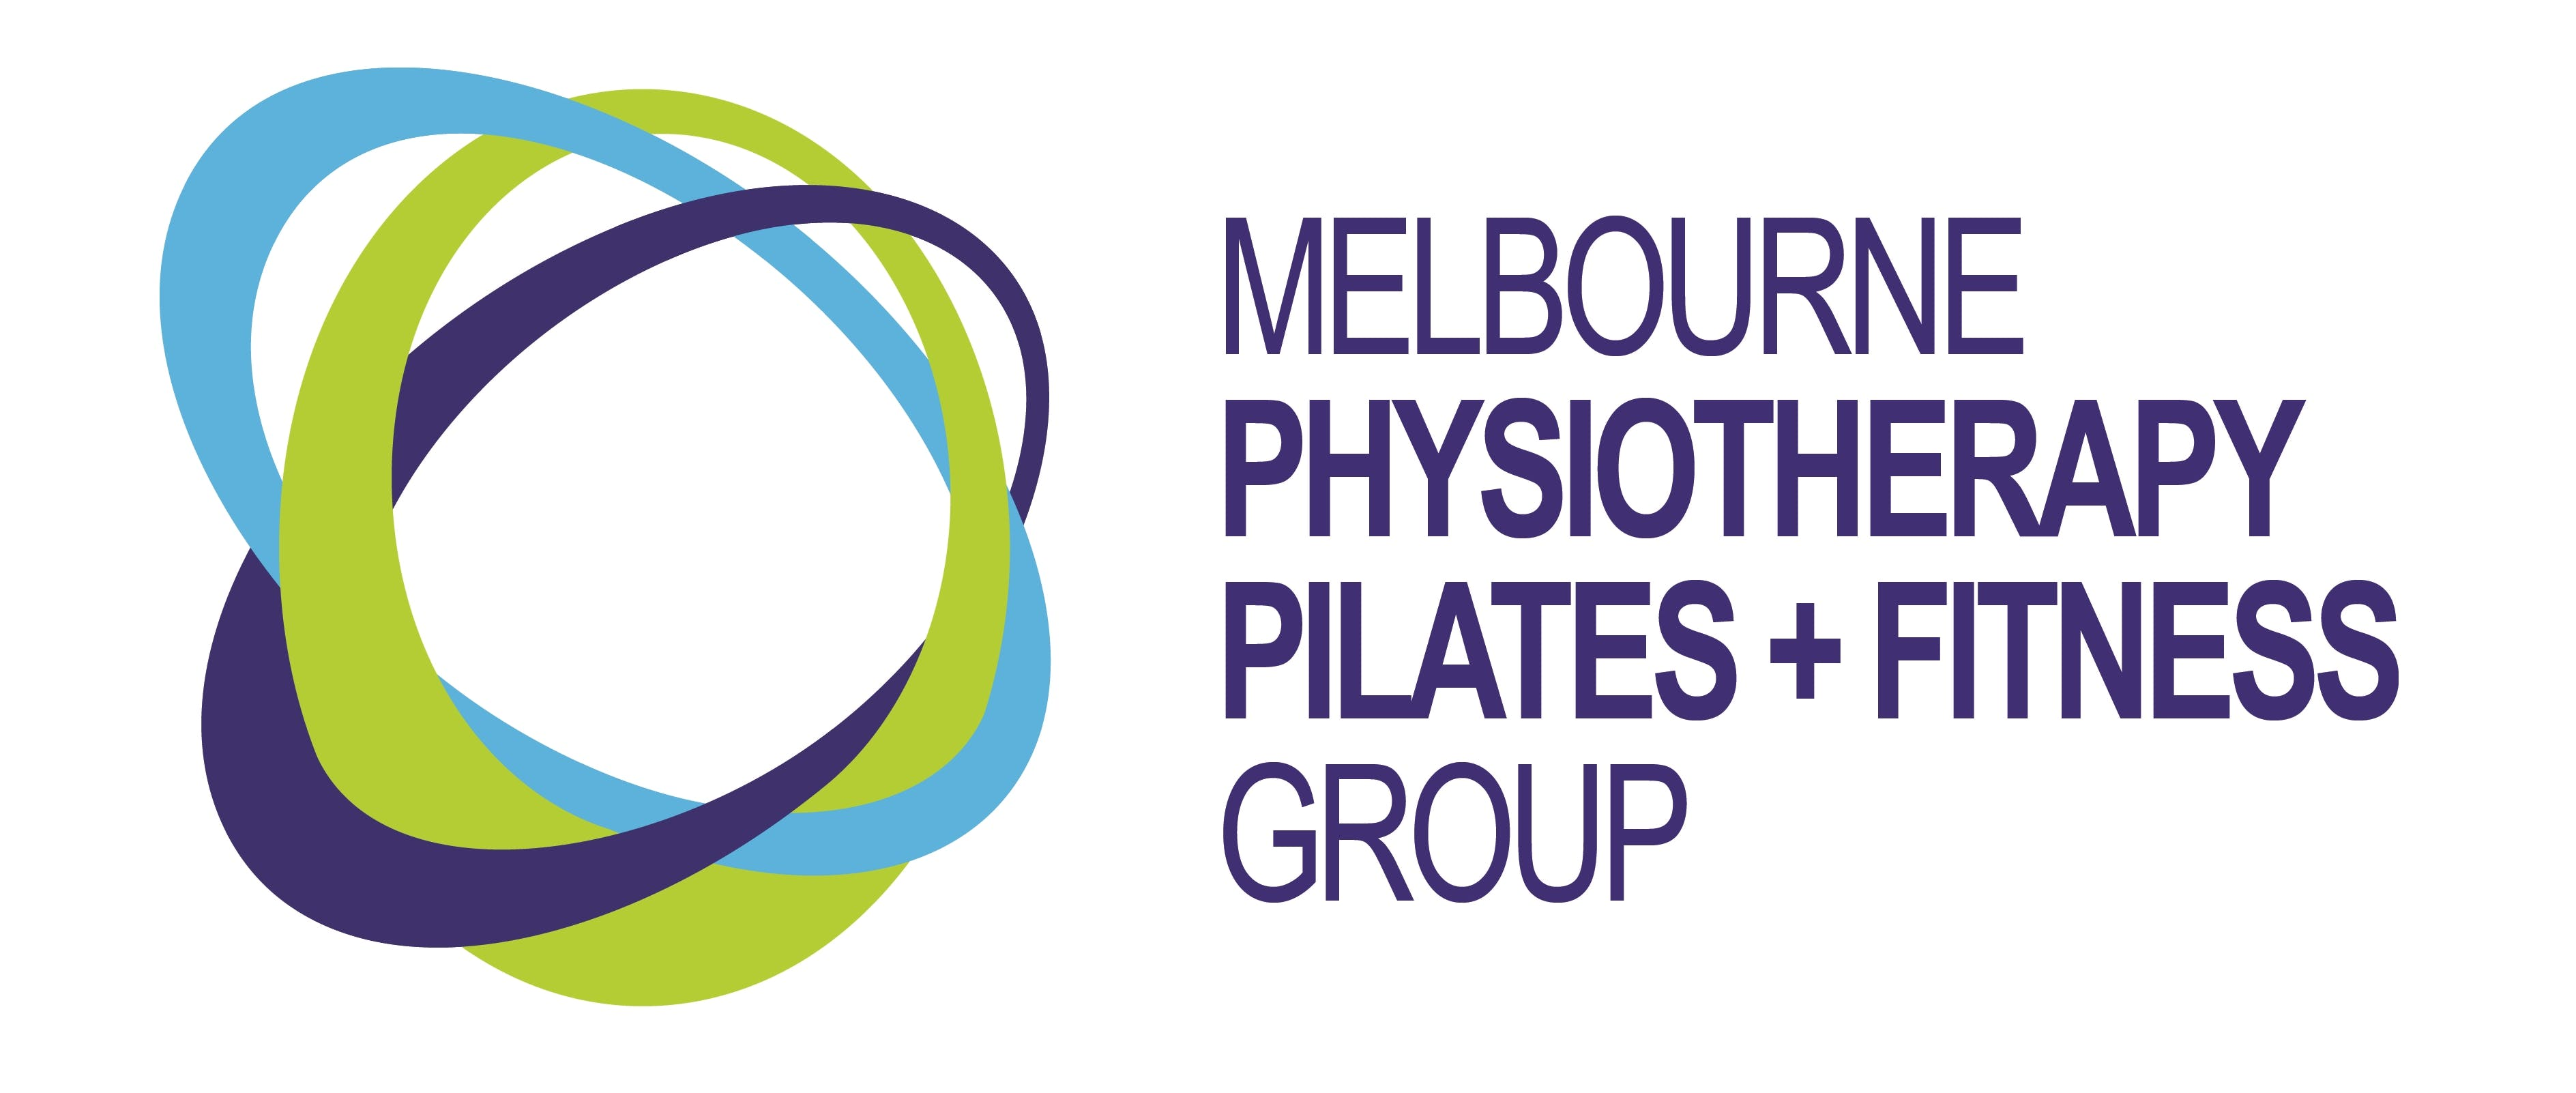 Melbourne Physiotherapy Group St Kilda Road Logo